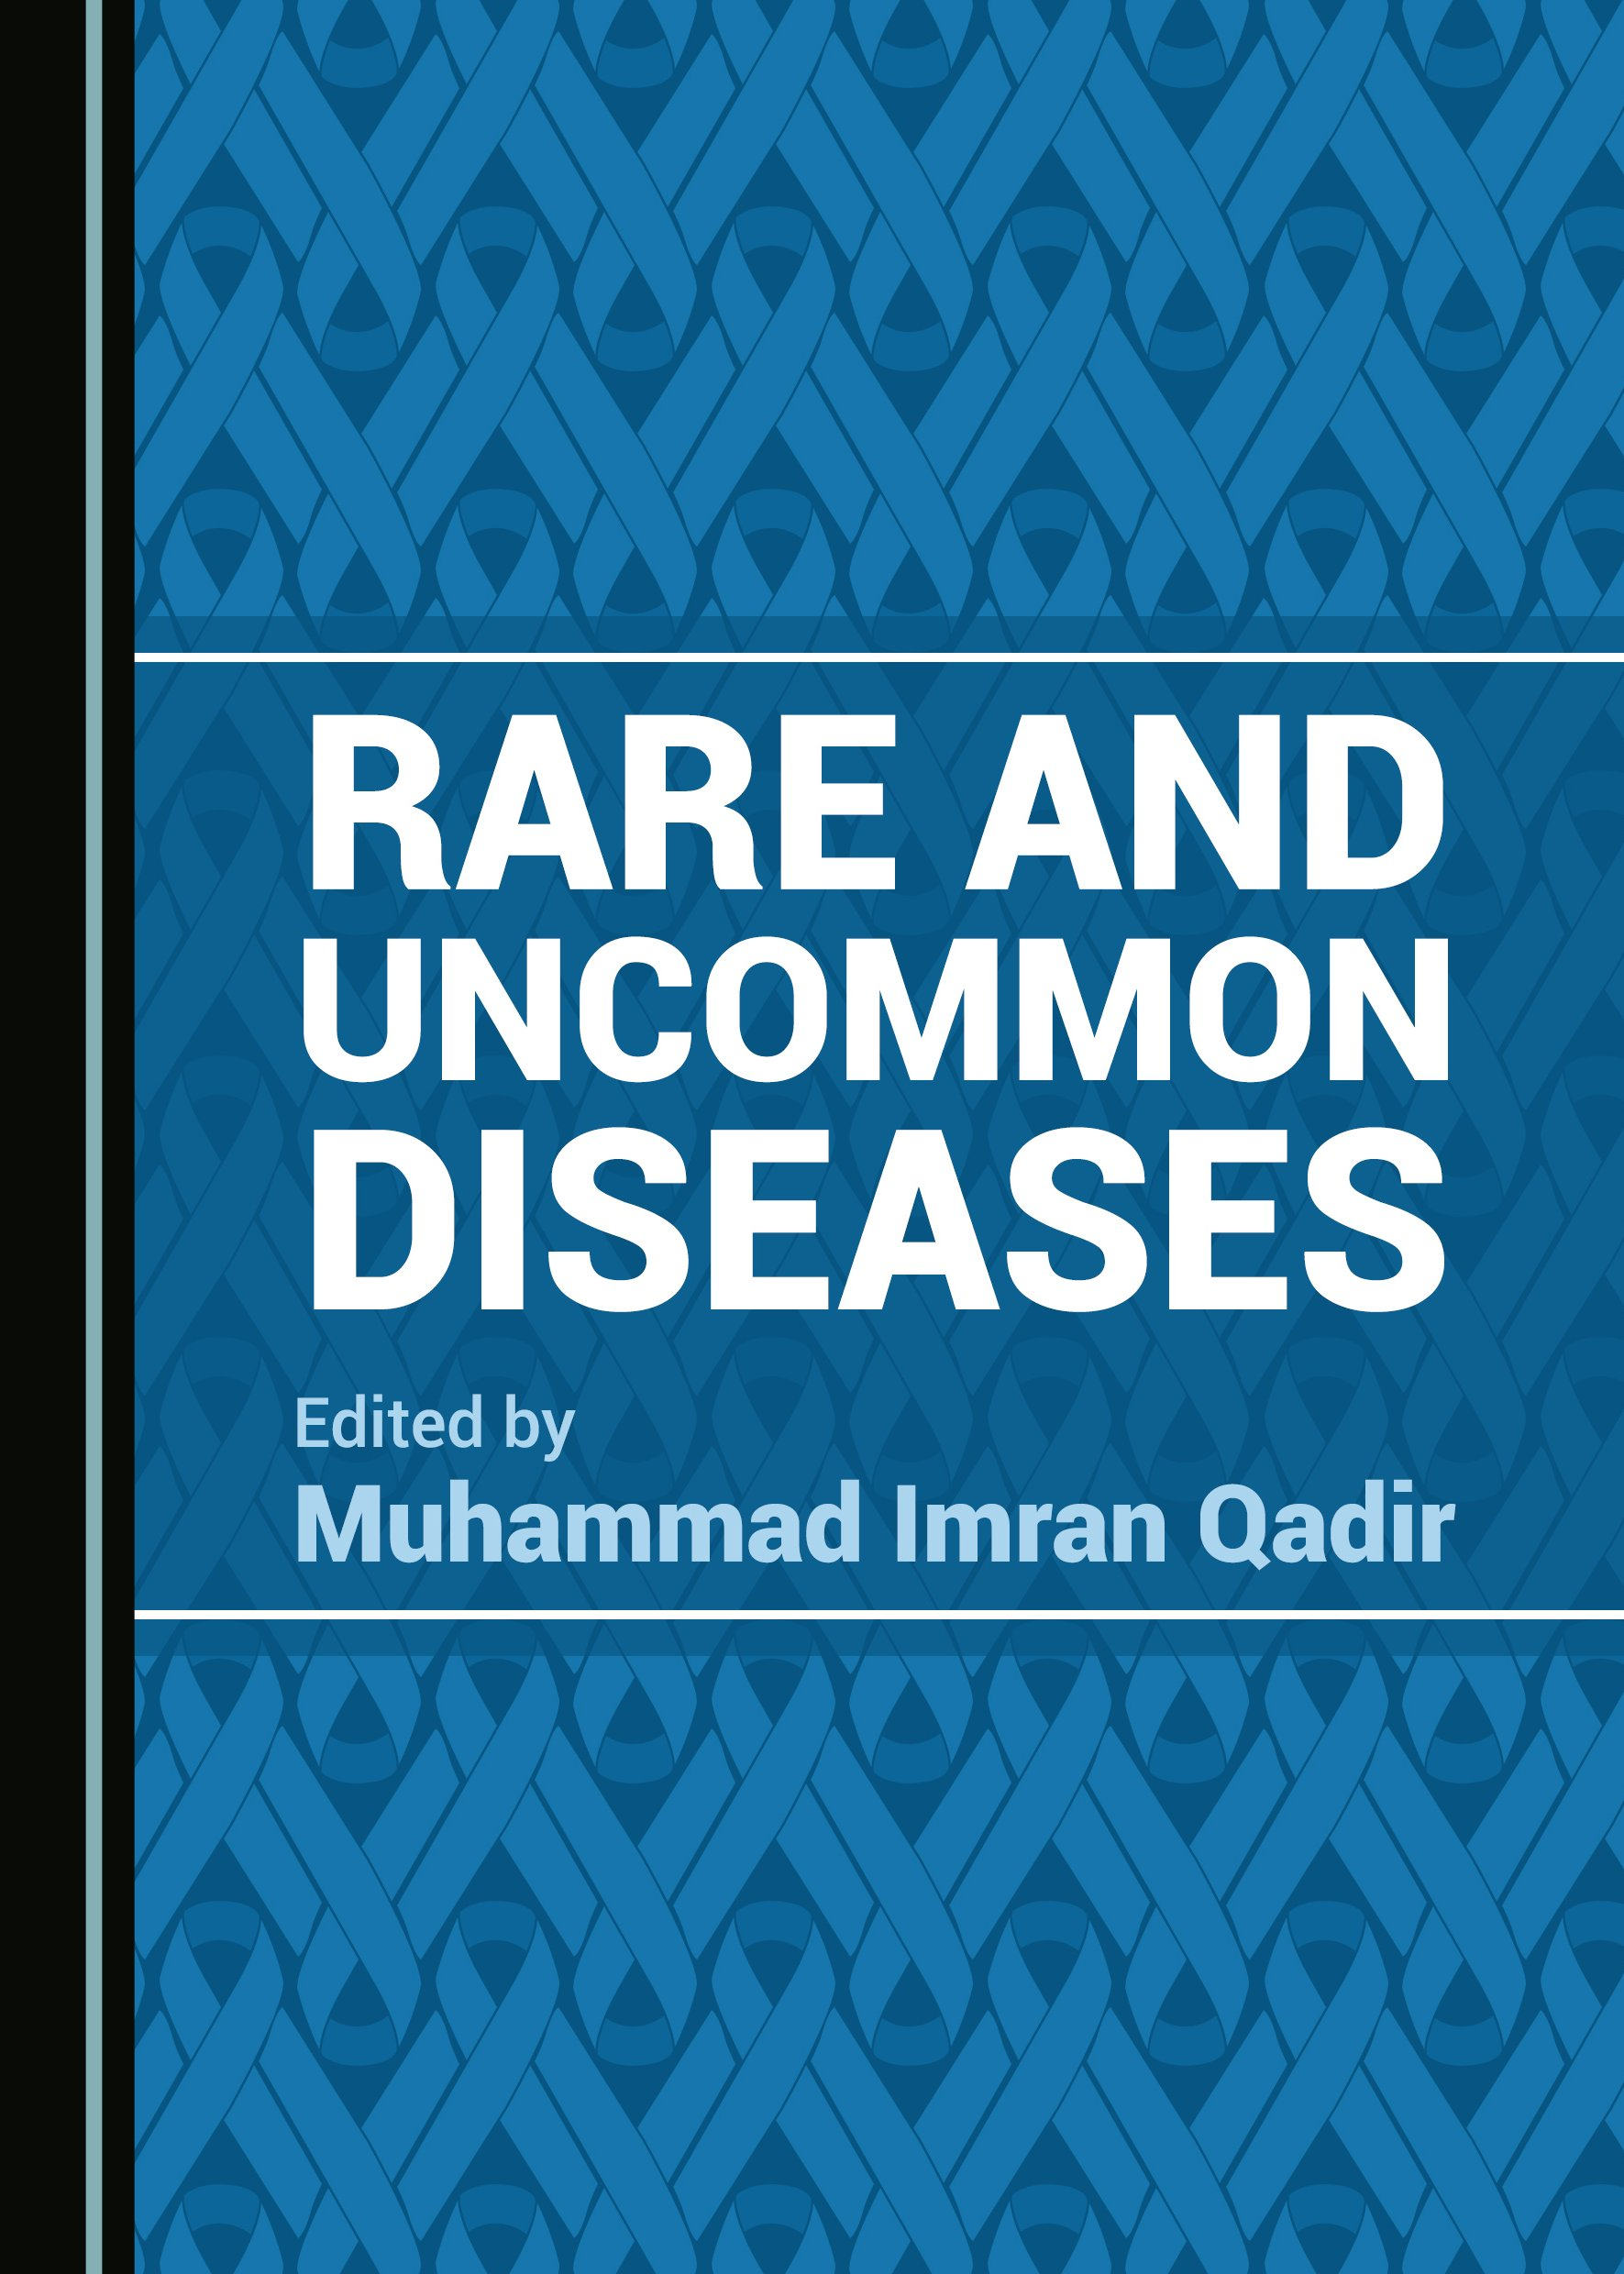 Rare and Uncommon Diseases